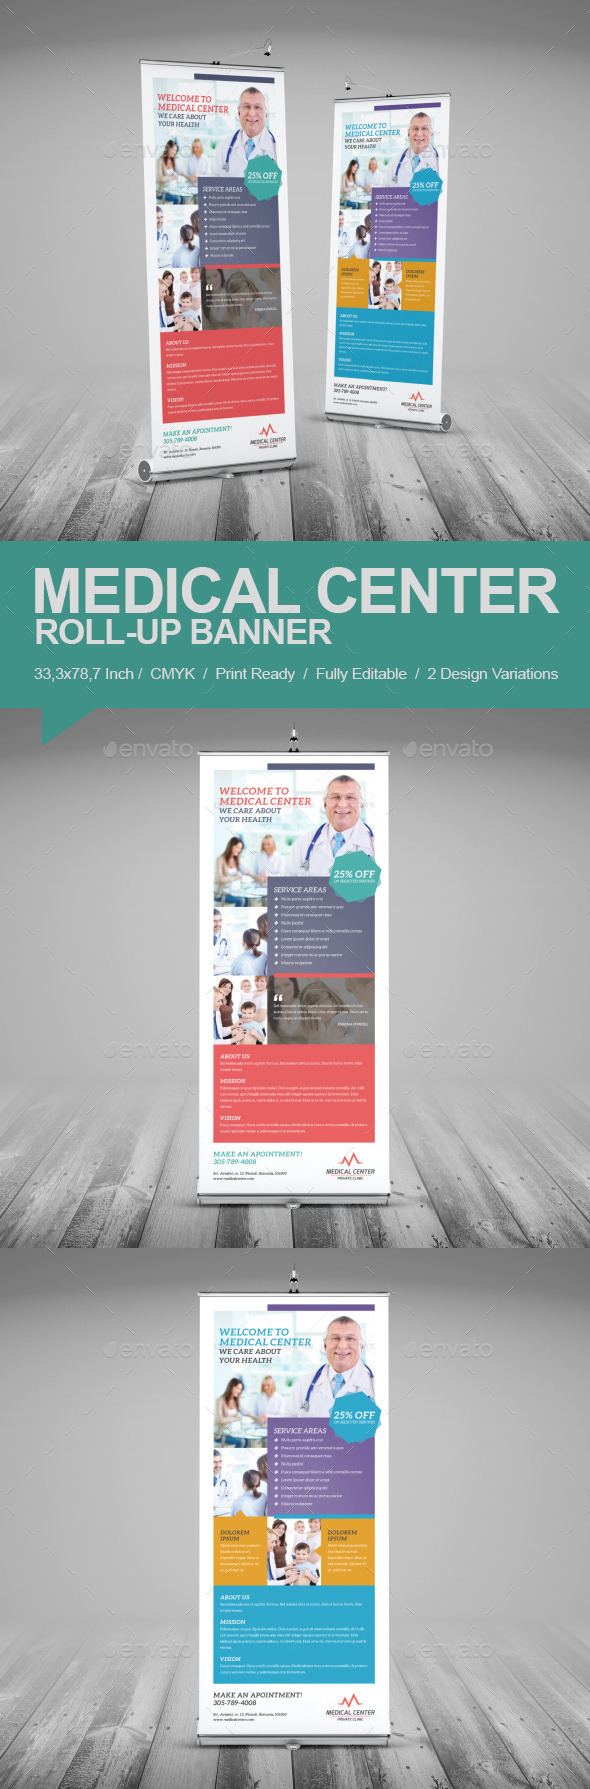 Medical Center Roll-Up Banner - Signage Print Templates